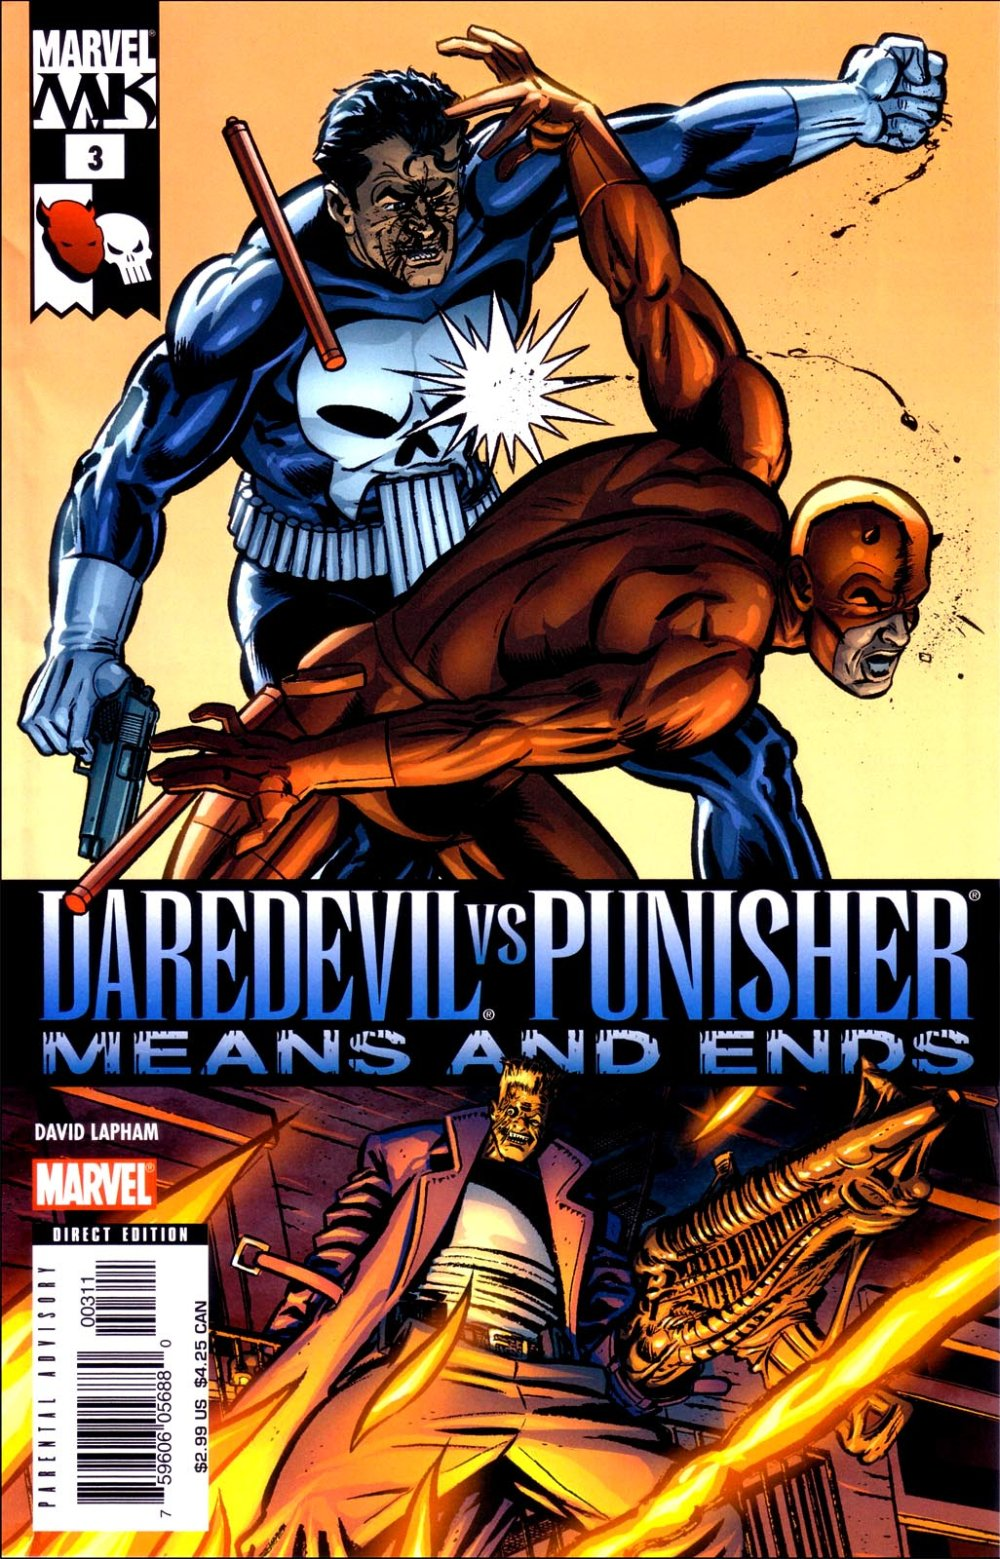 Daredevil- Vs Punisher- Means And Ends [Marvel Knights] Mini 1 0003.jpg